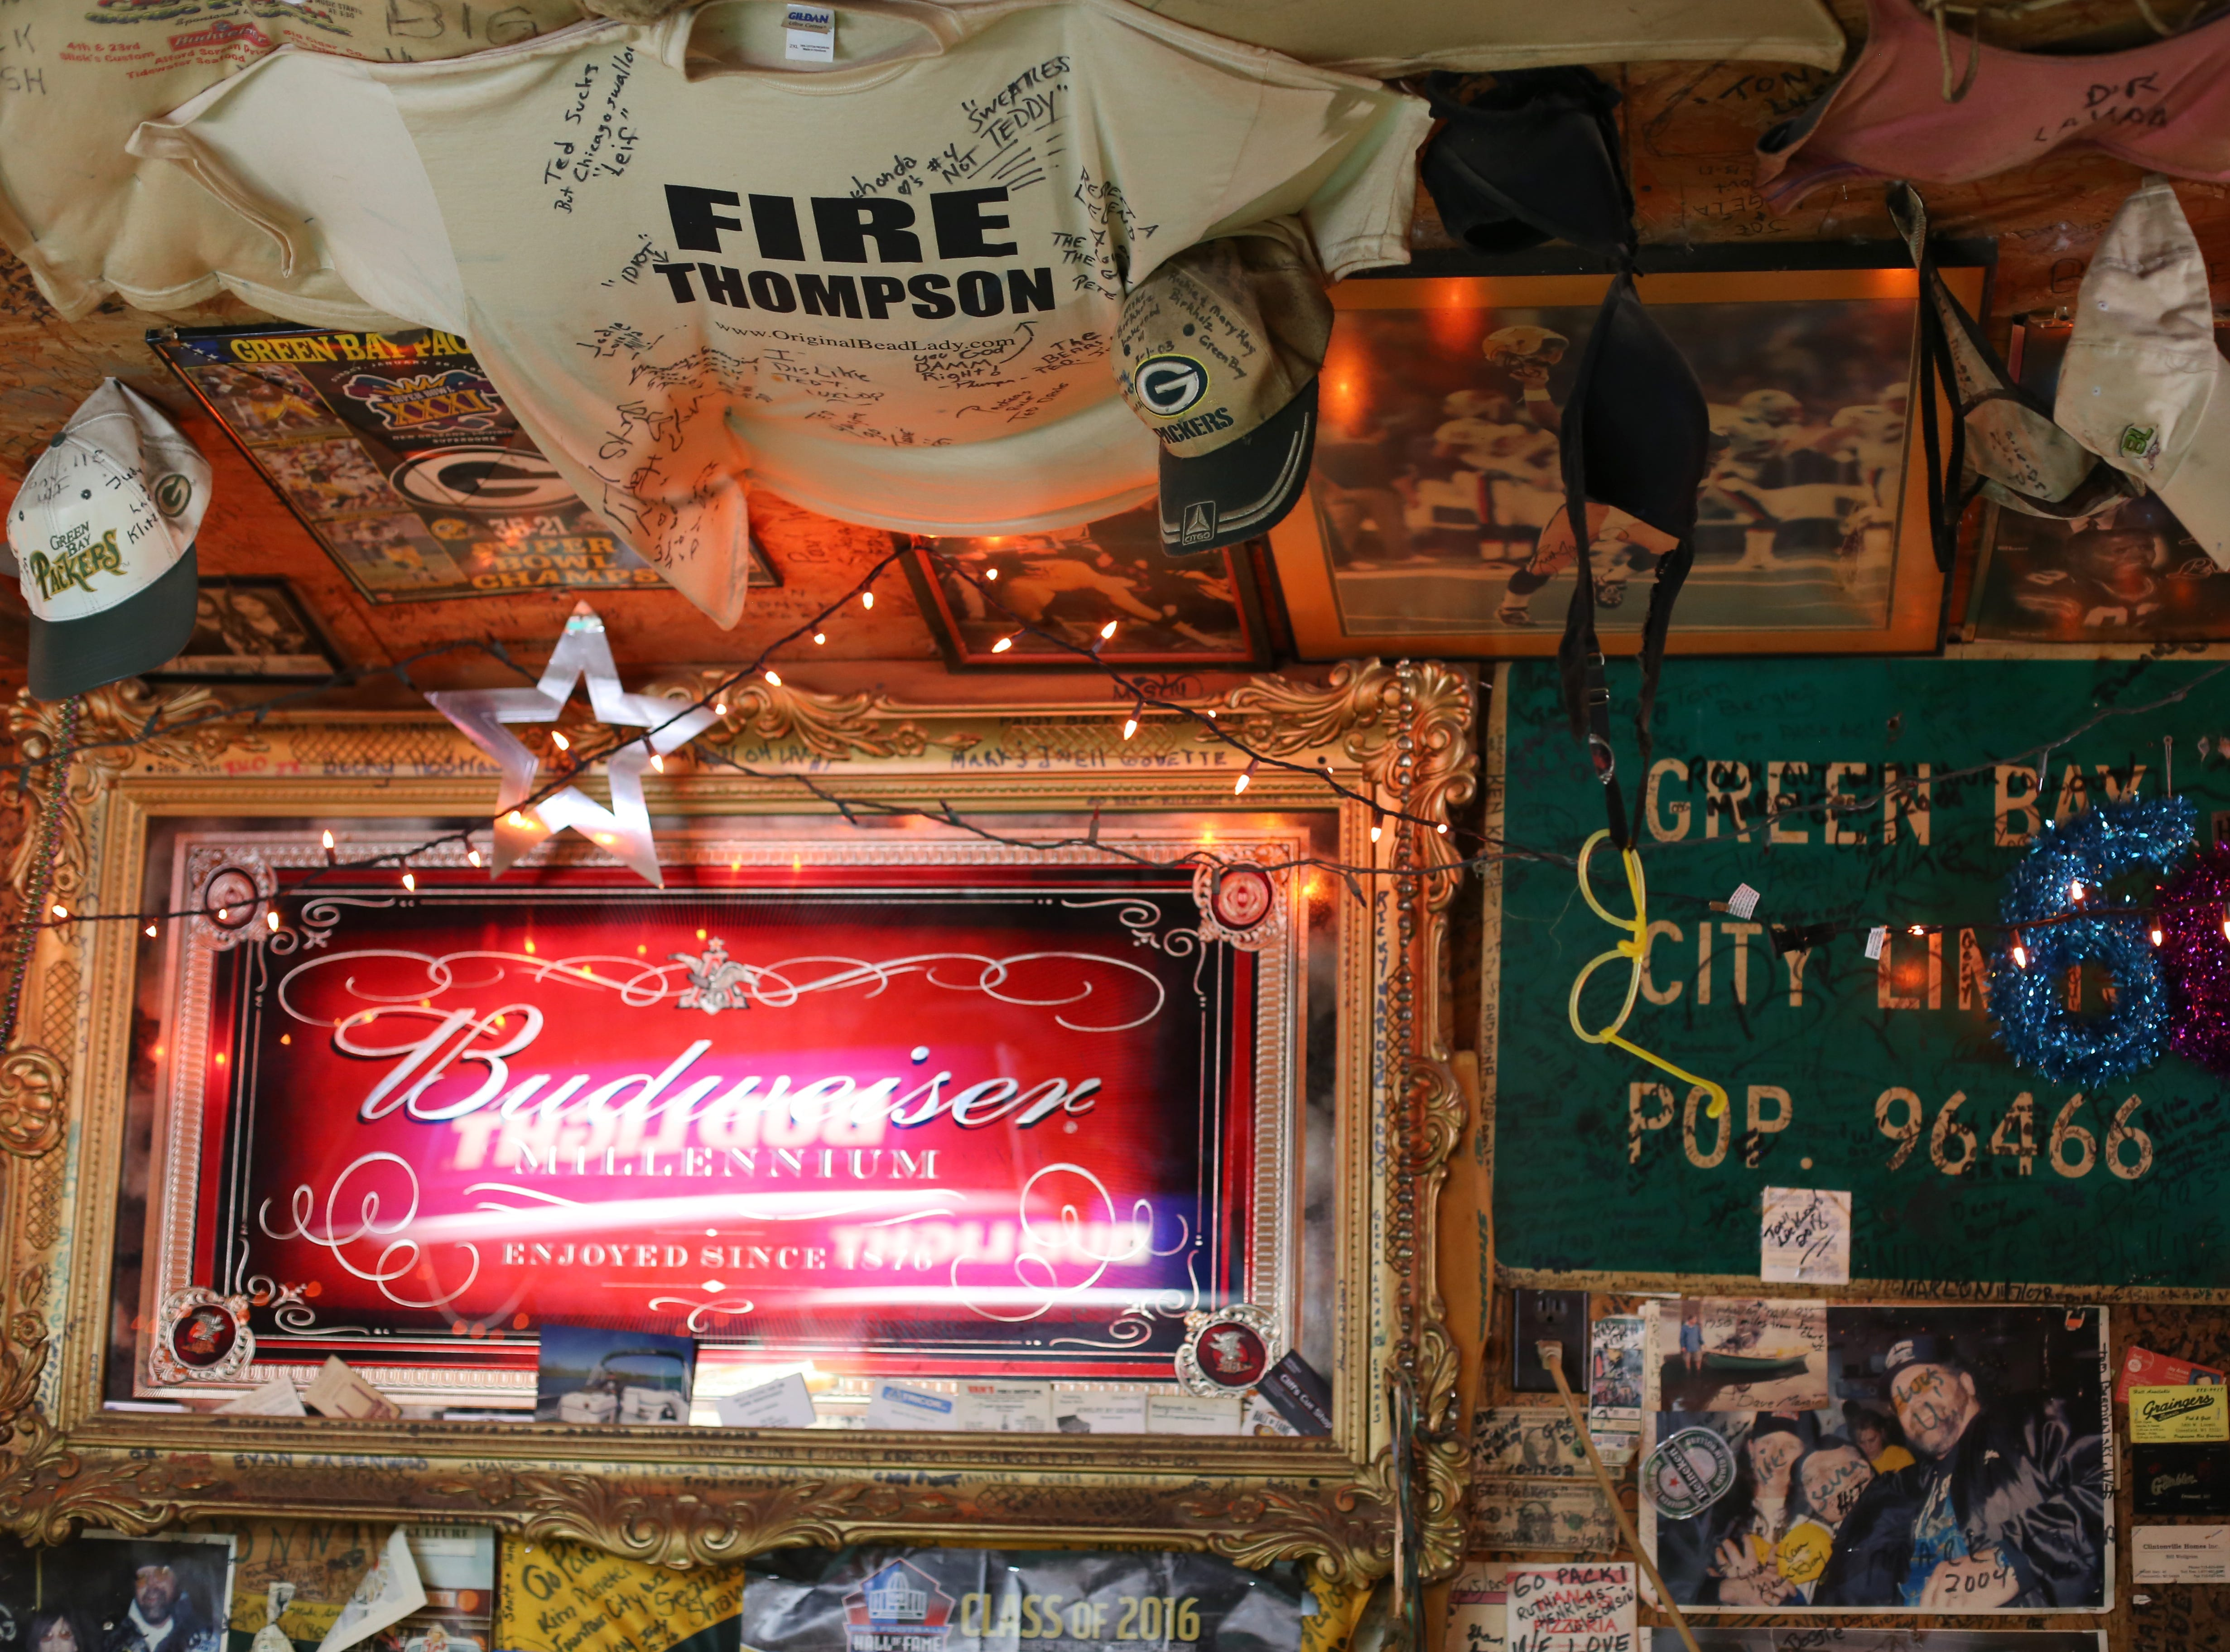 When The Broke Spoke caught fire in 1999, the only thing owner Stevie Haas could salvage was the Green Bay, Wisconsin, city limit sign.